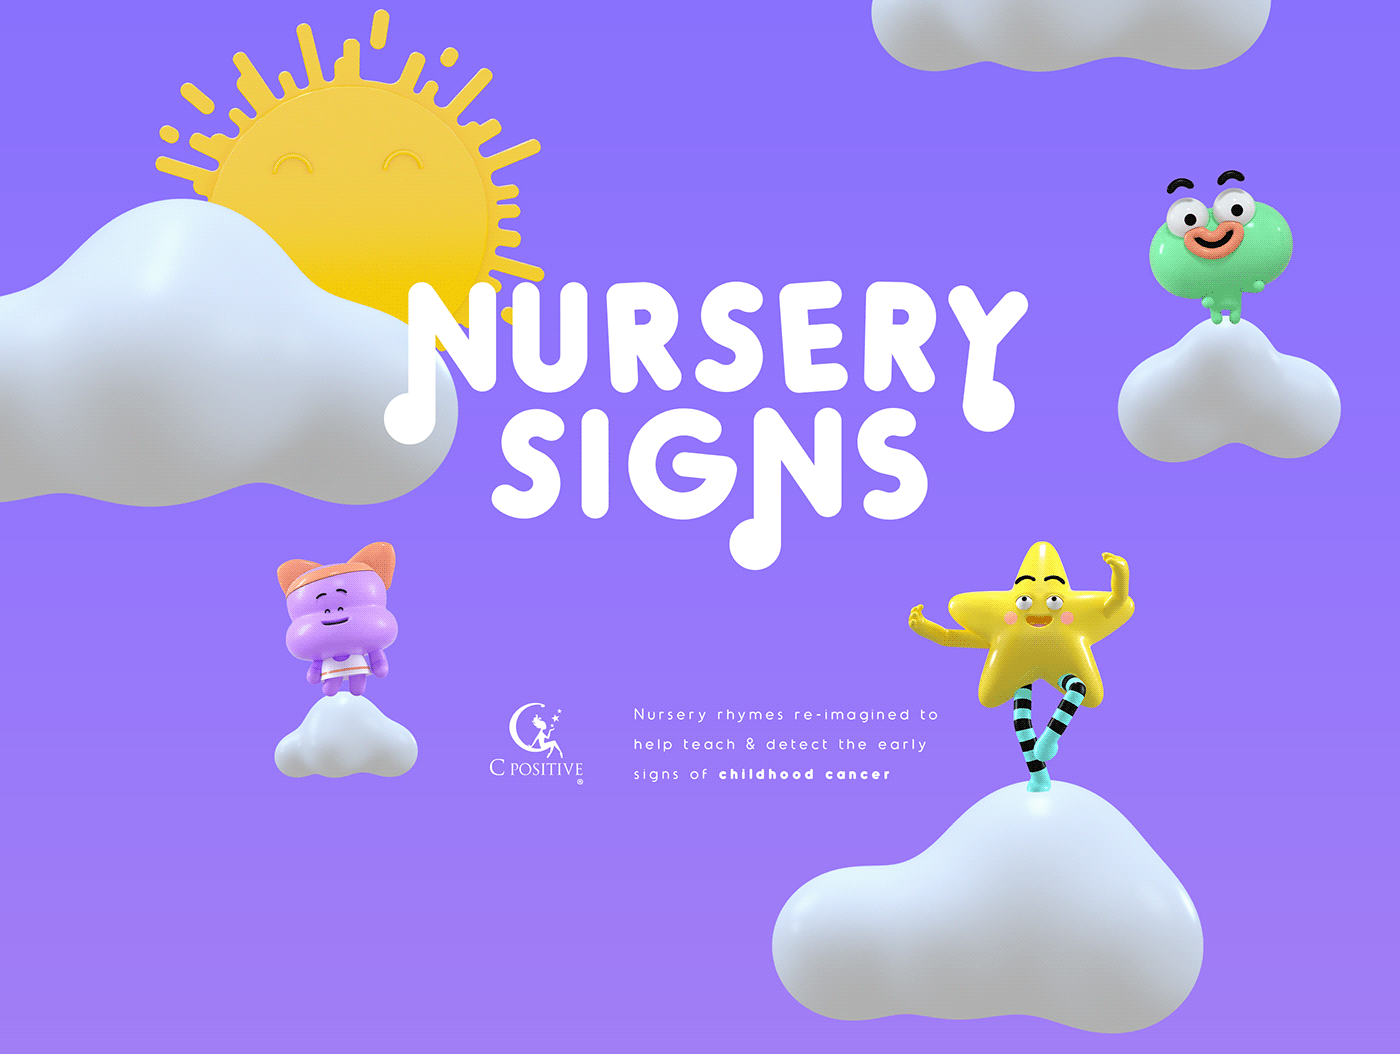 nursery rhymes Character design  3d animation childhood cancer saatchi dubai art direction  campaign ad Advertising